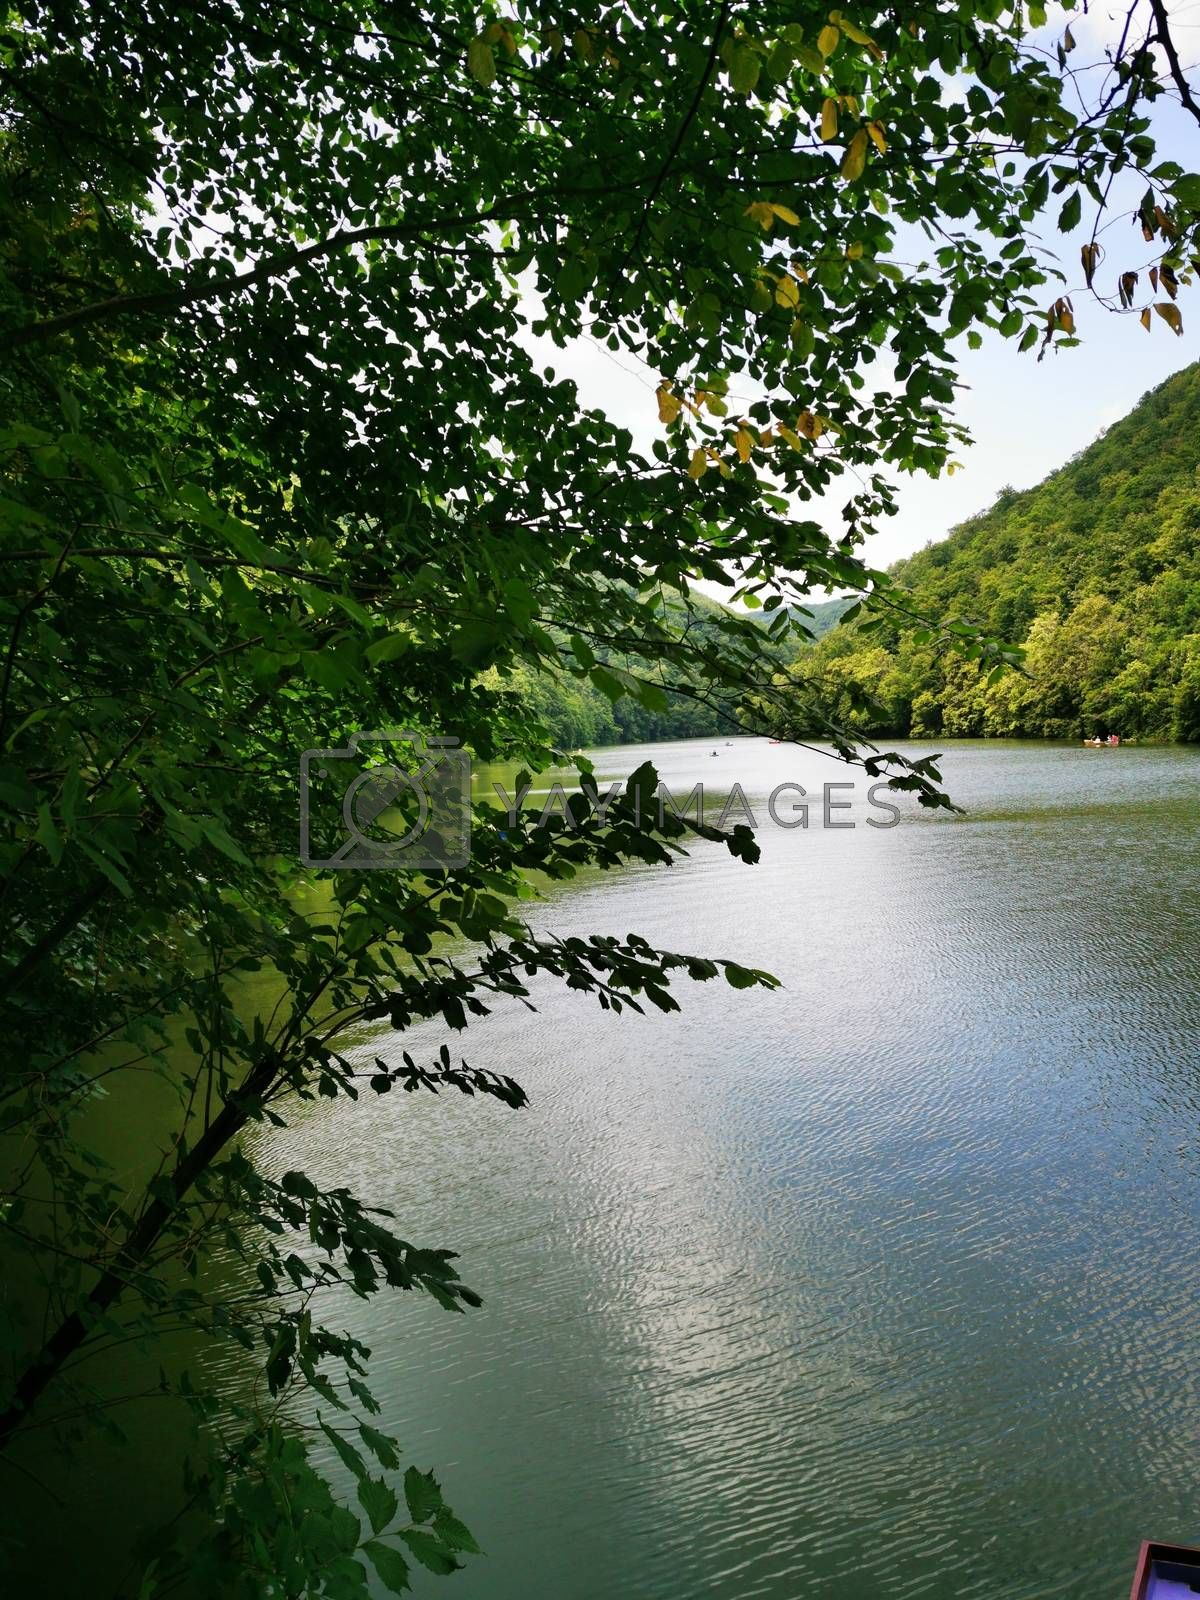 Royalty free image of A body of water surrounded by trees by balage941